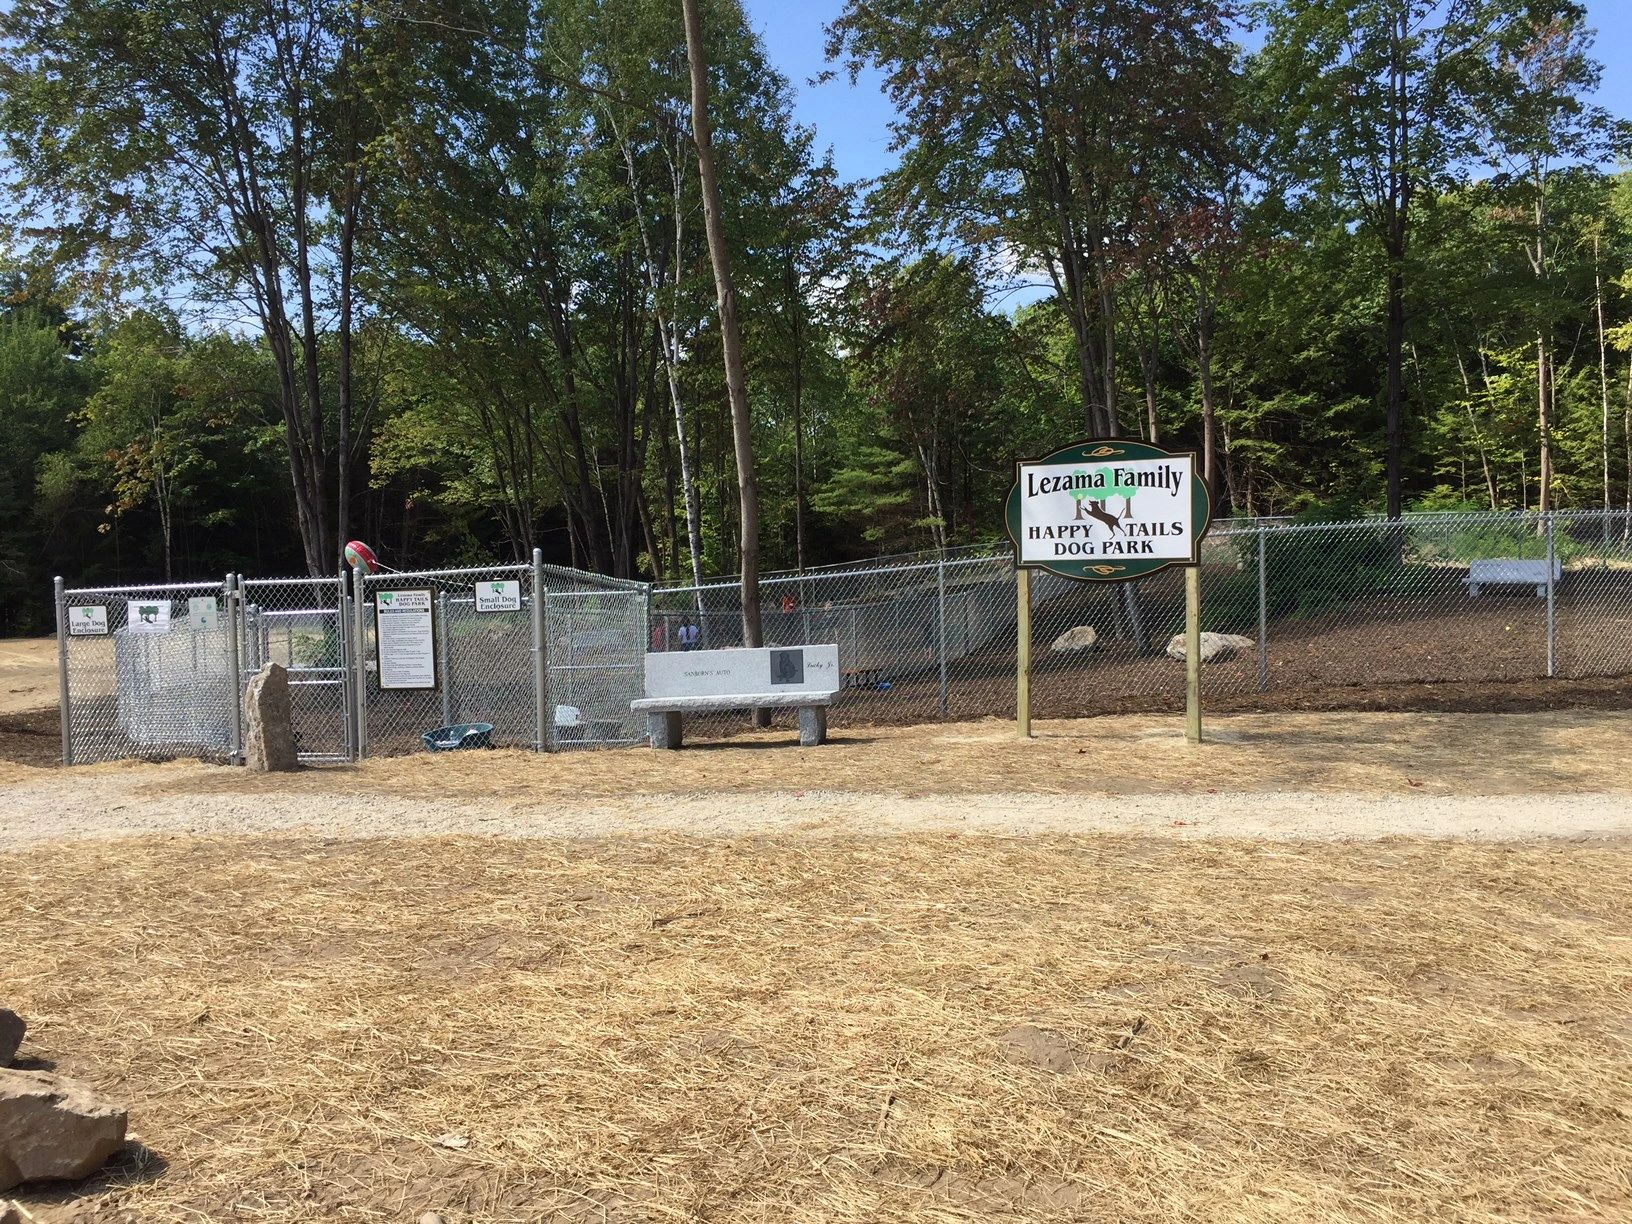 Lezama Family Happy Tails Dog Park Laconia NH